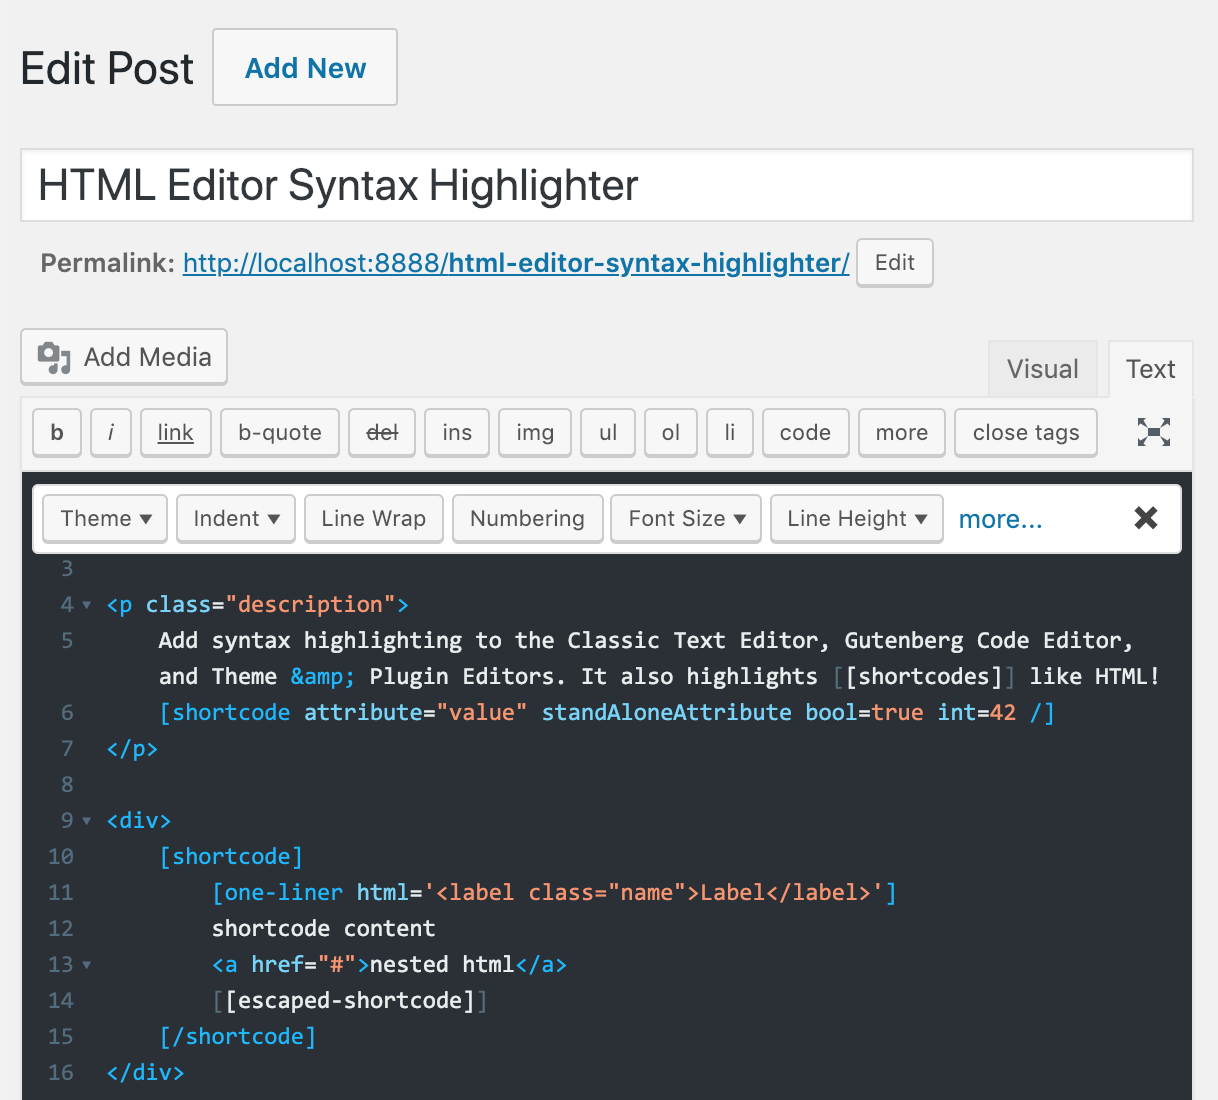 html-editor-syntax-highlighter screenshot 2